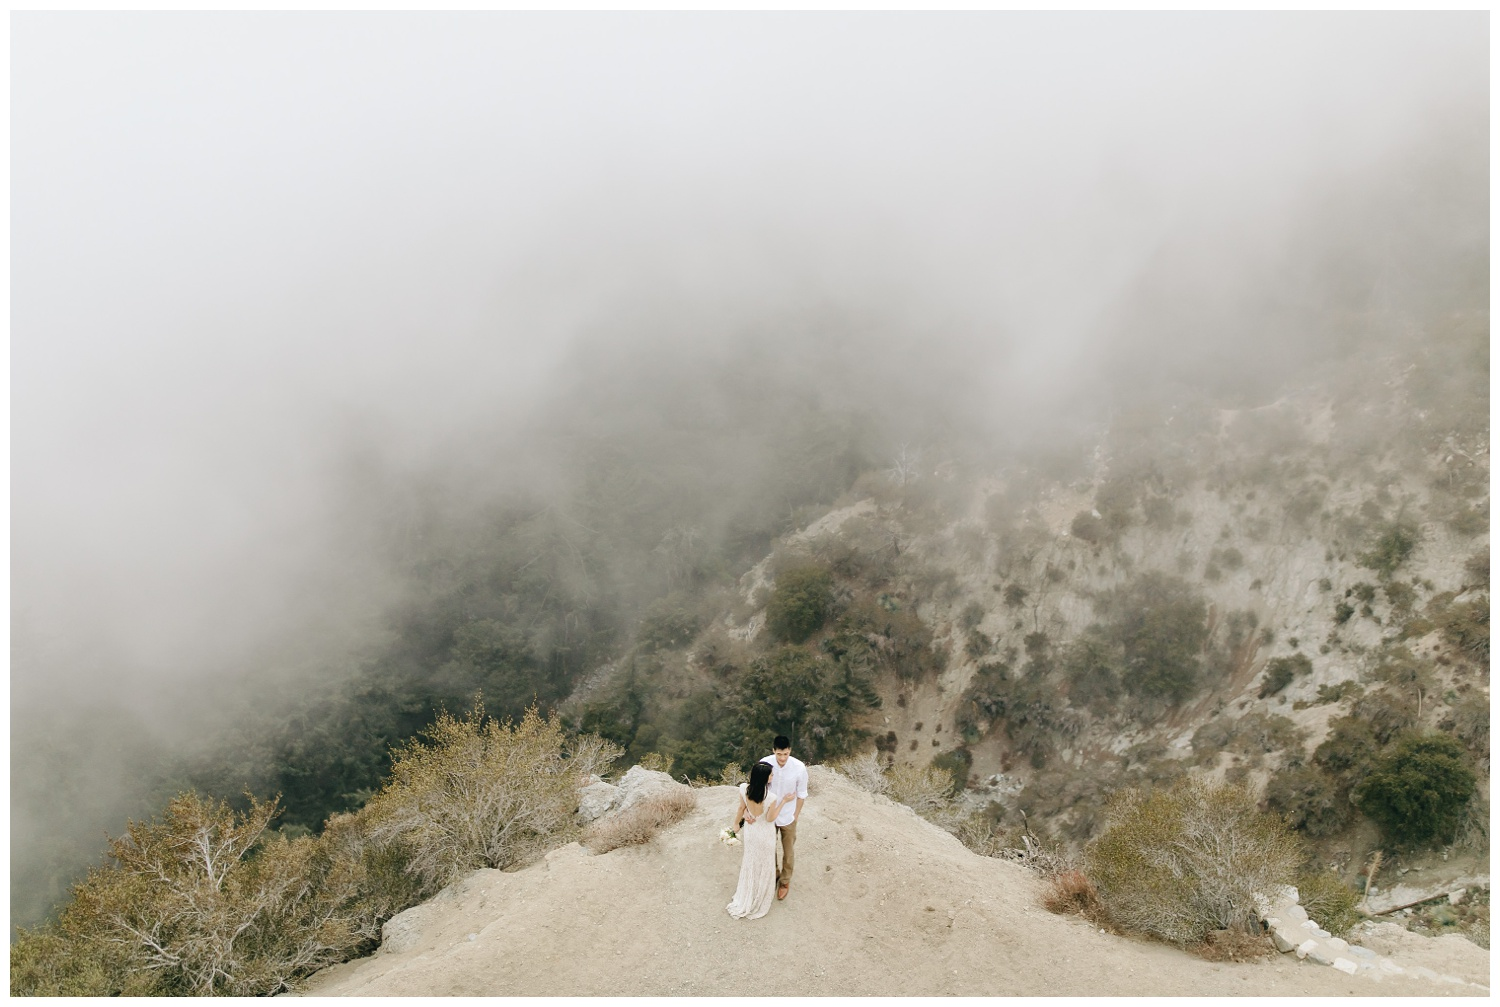 Los Angeles Forest Warm and Artistic Engagement Session-9849.jpg